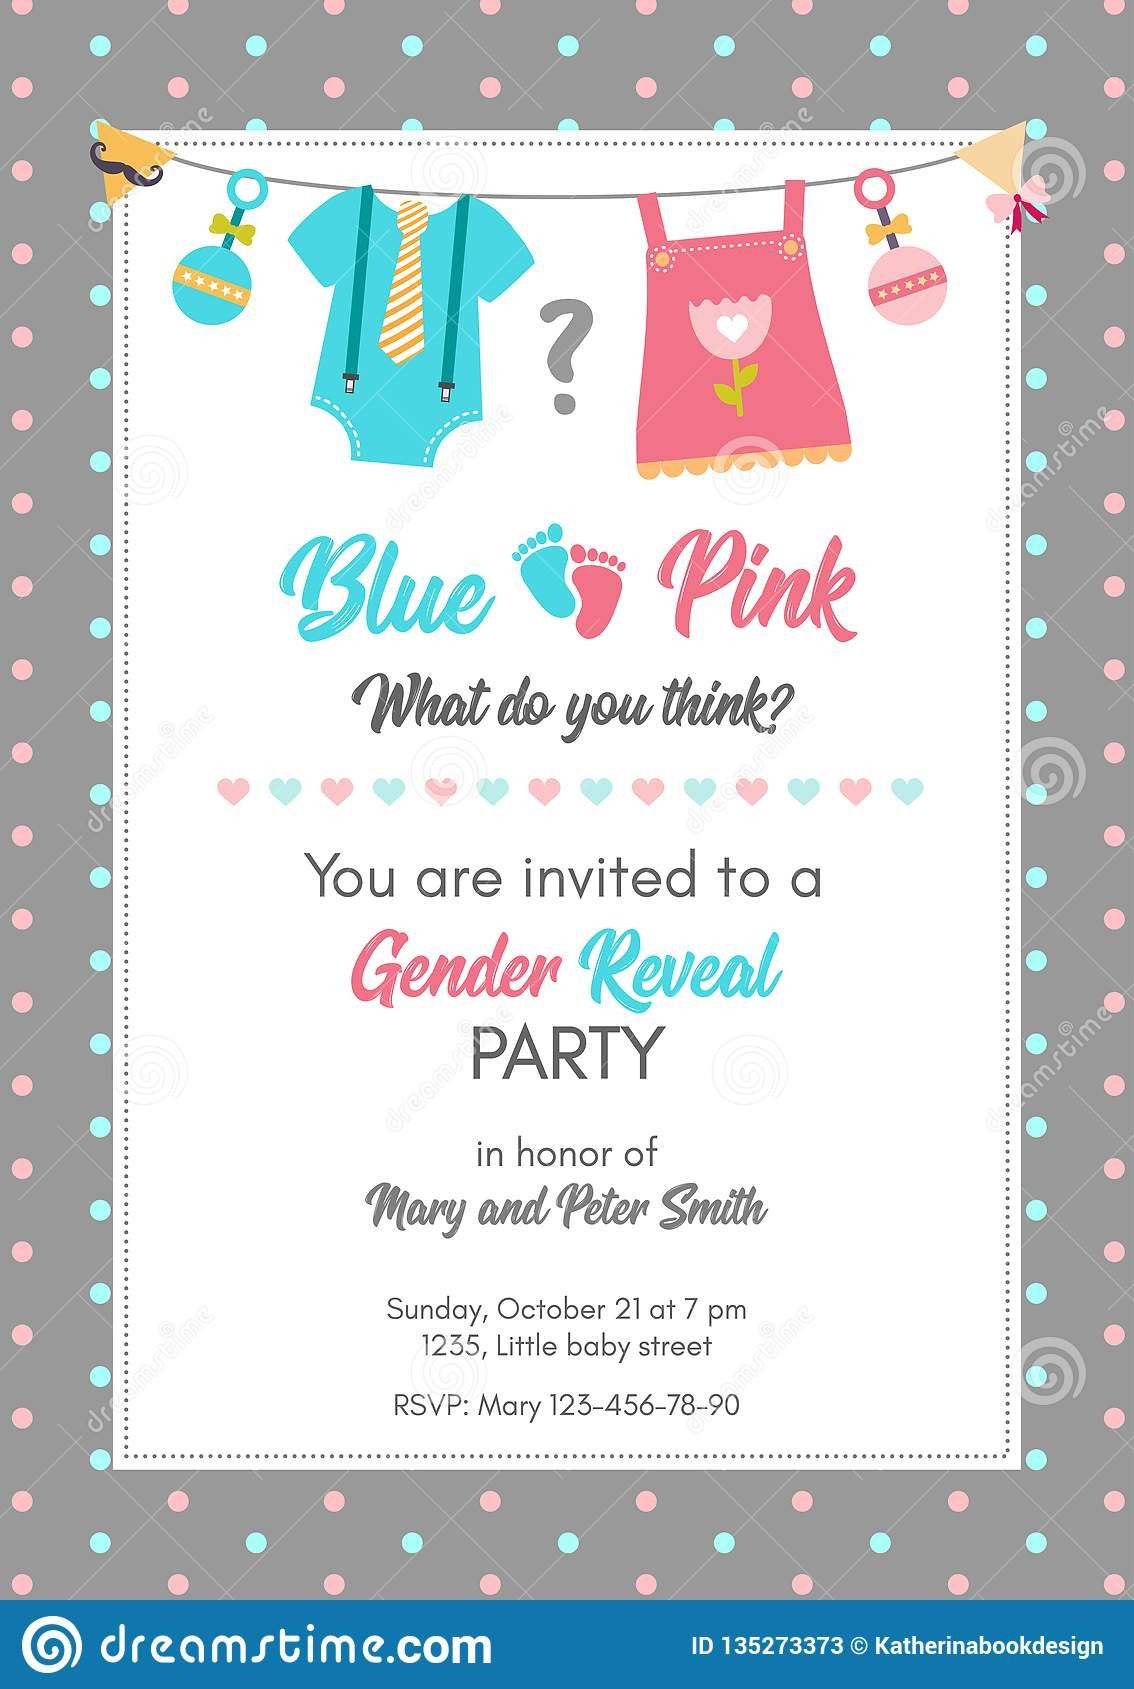 008 Dreaded Gender Reveal Invitation Template Image  Templates Party Free Printable MakerFull